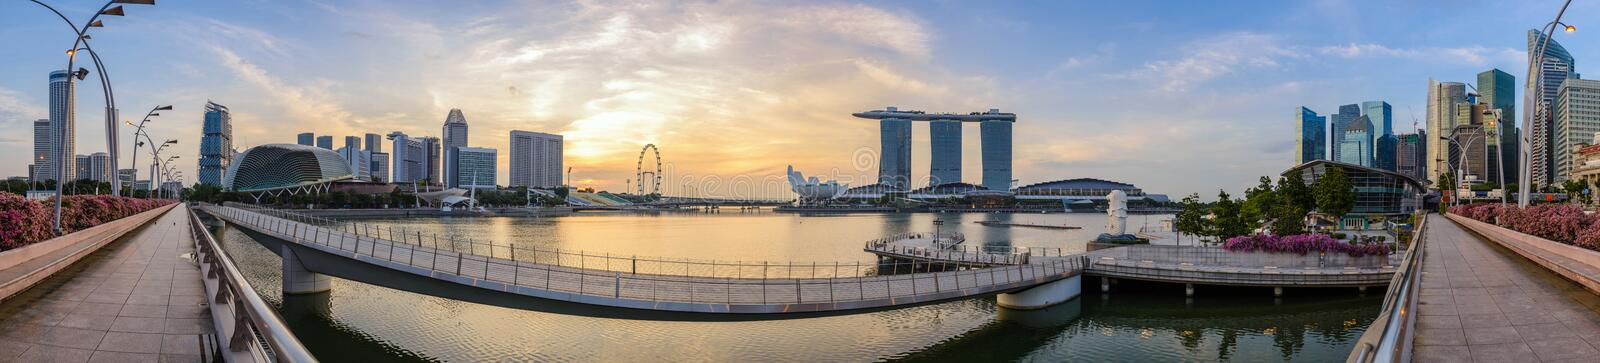 Singapur-Panoramaskyline stockfoto